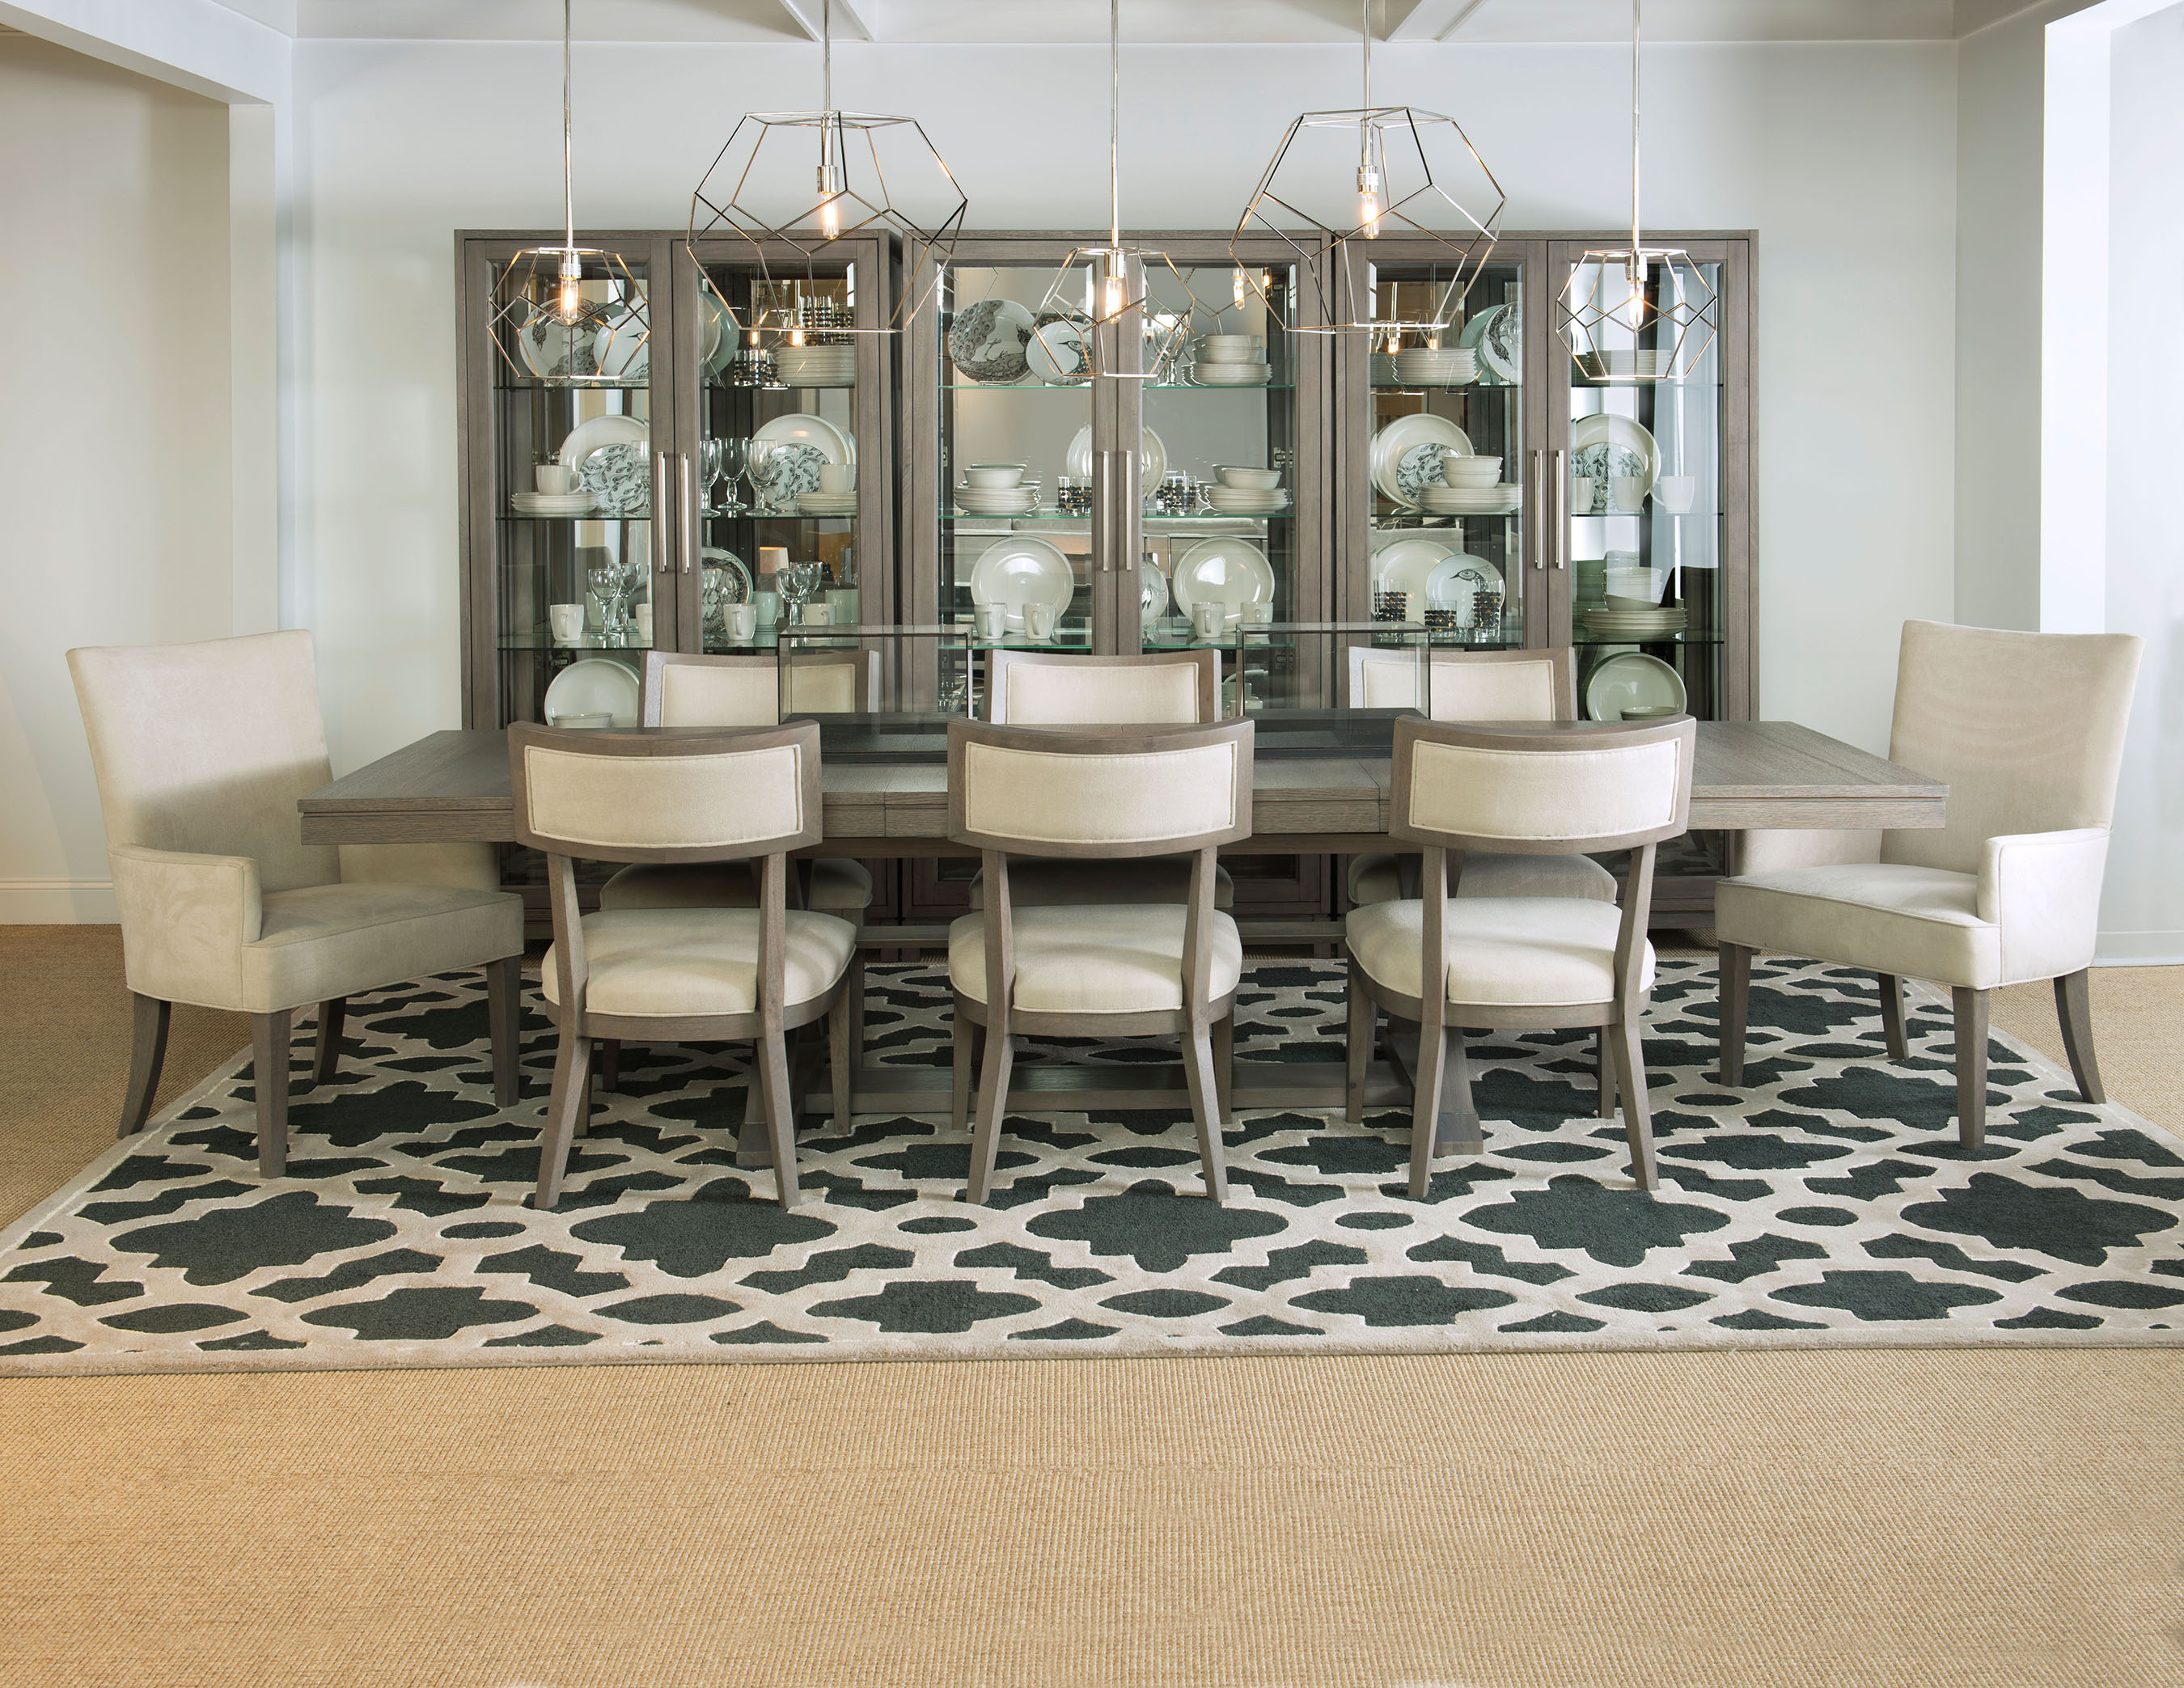 Rachael Ray Home Collection Celebrity Style For The Home